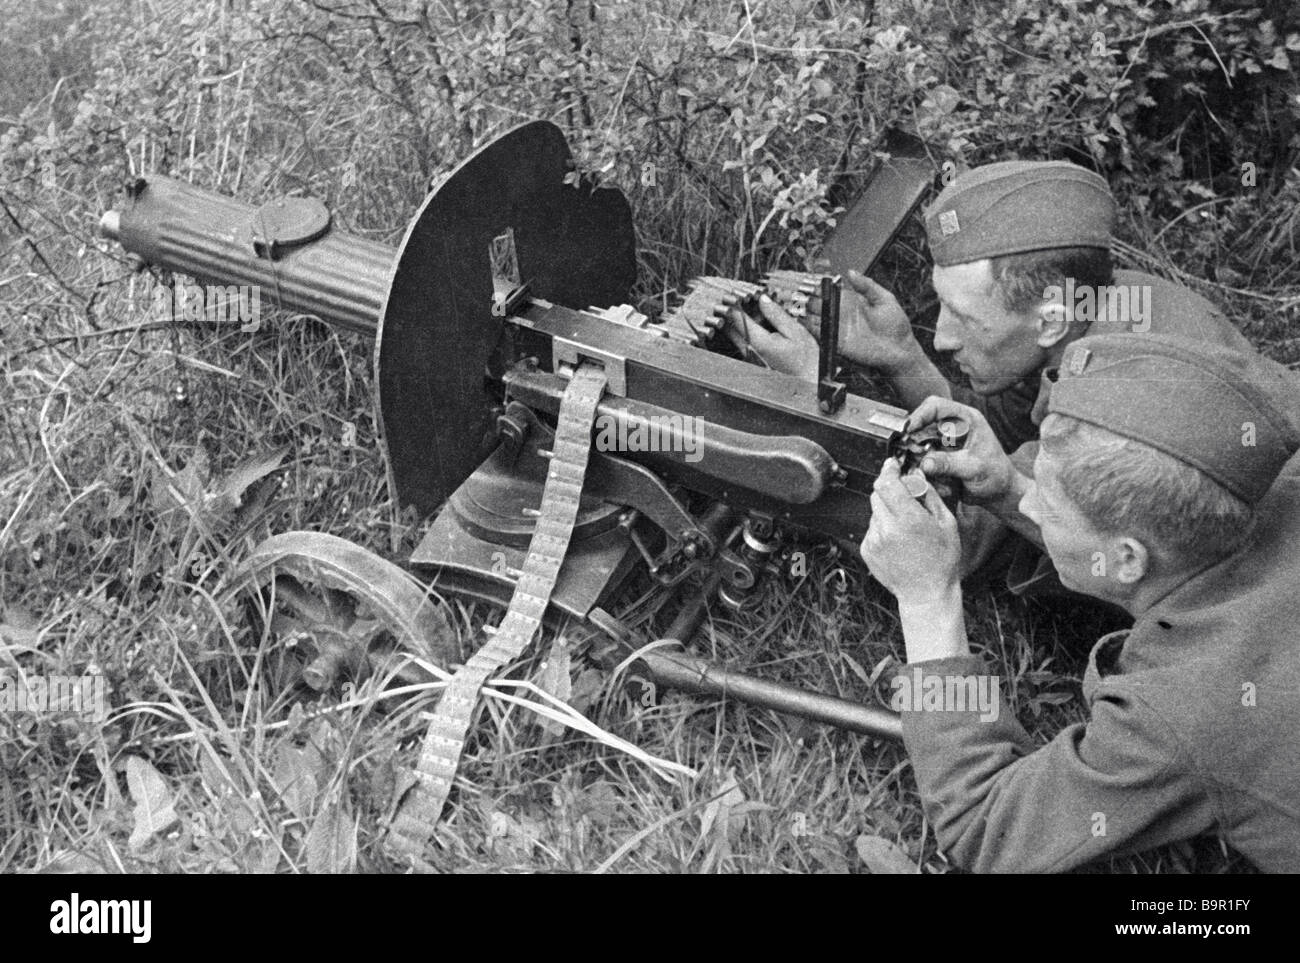 Machine gunners of the Czechoslovak Corps fighting during the WWII - Stock Image